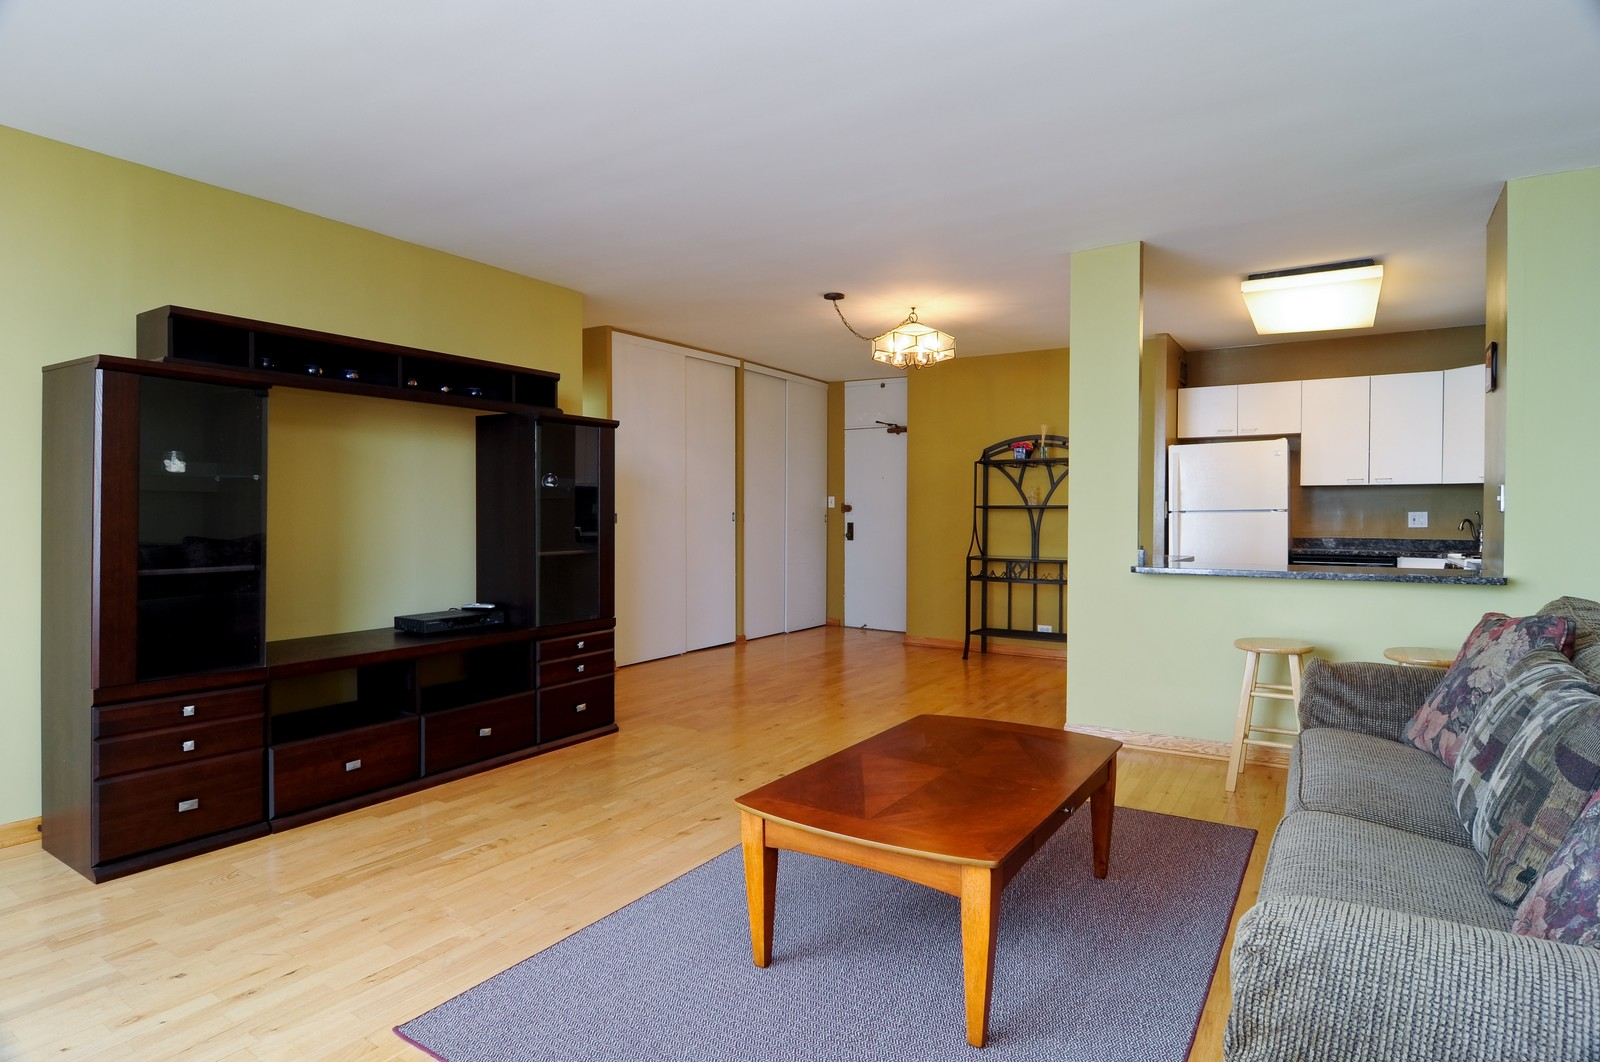 Real Estate Photography - 1000 Lake Shore Dr, Unit 2106, Chicago, IL, 60611 - Living Room